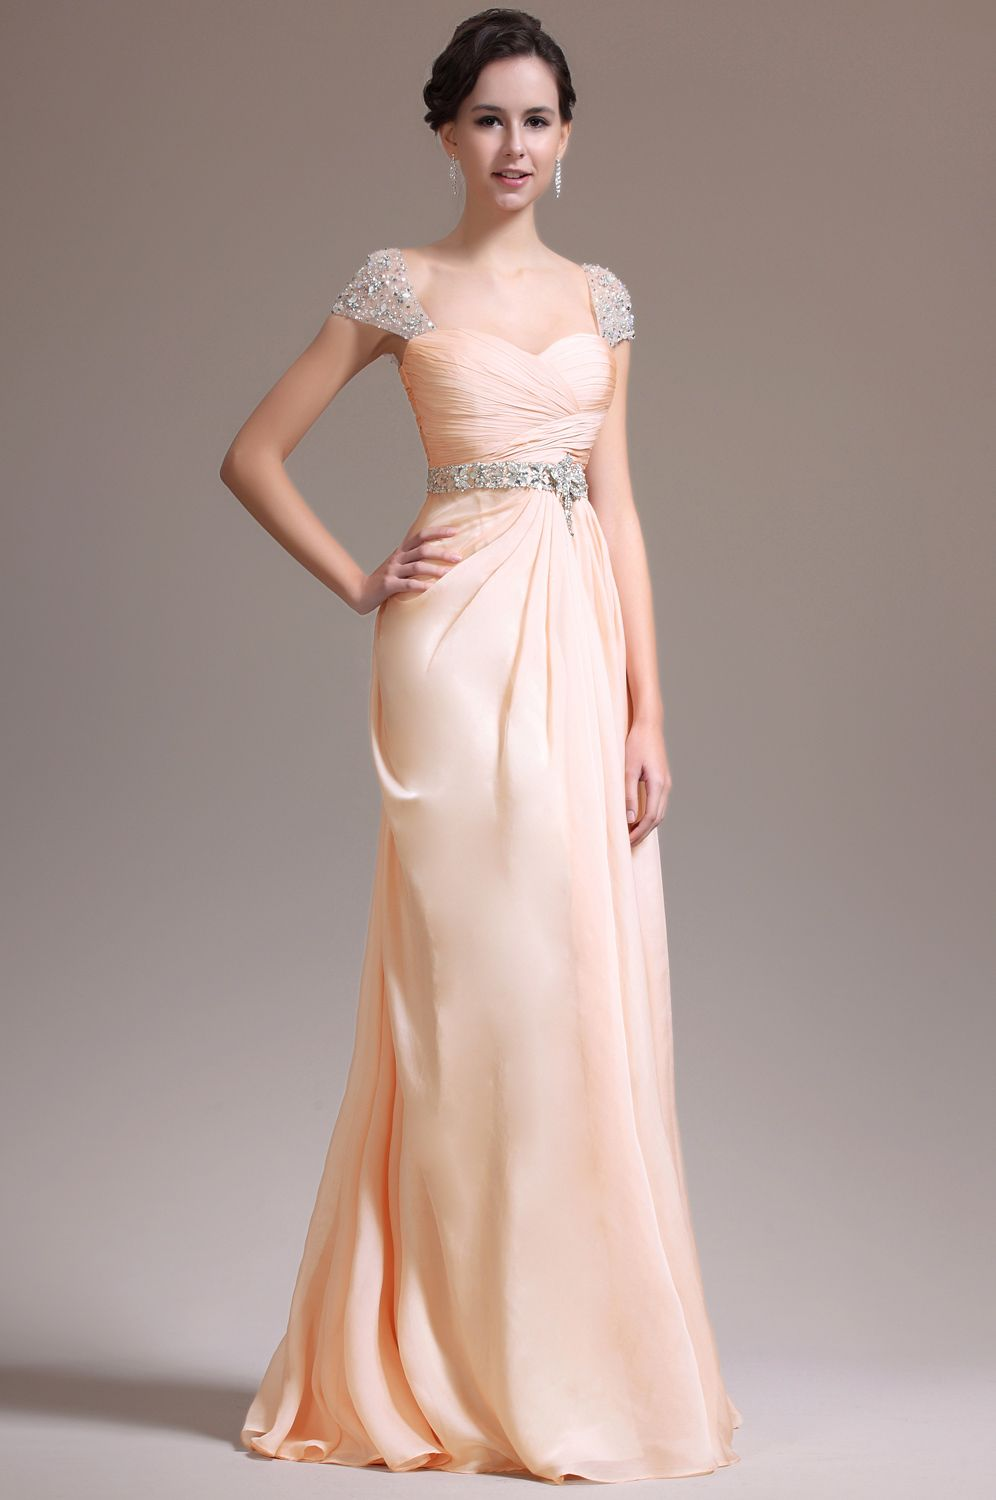 Pink not sparkle vestidos pinterest cap gowns and formal